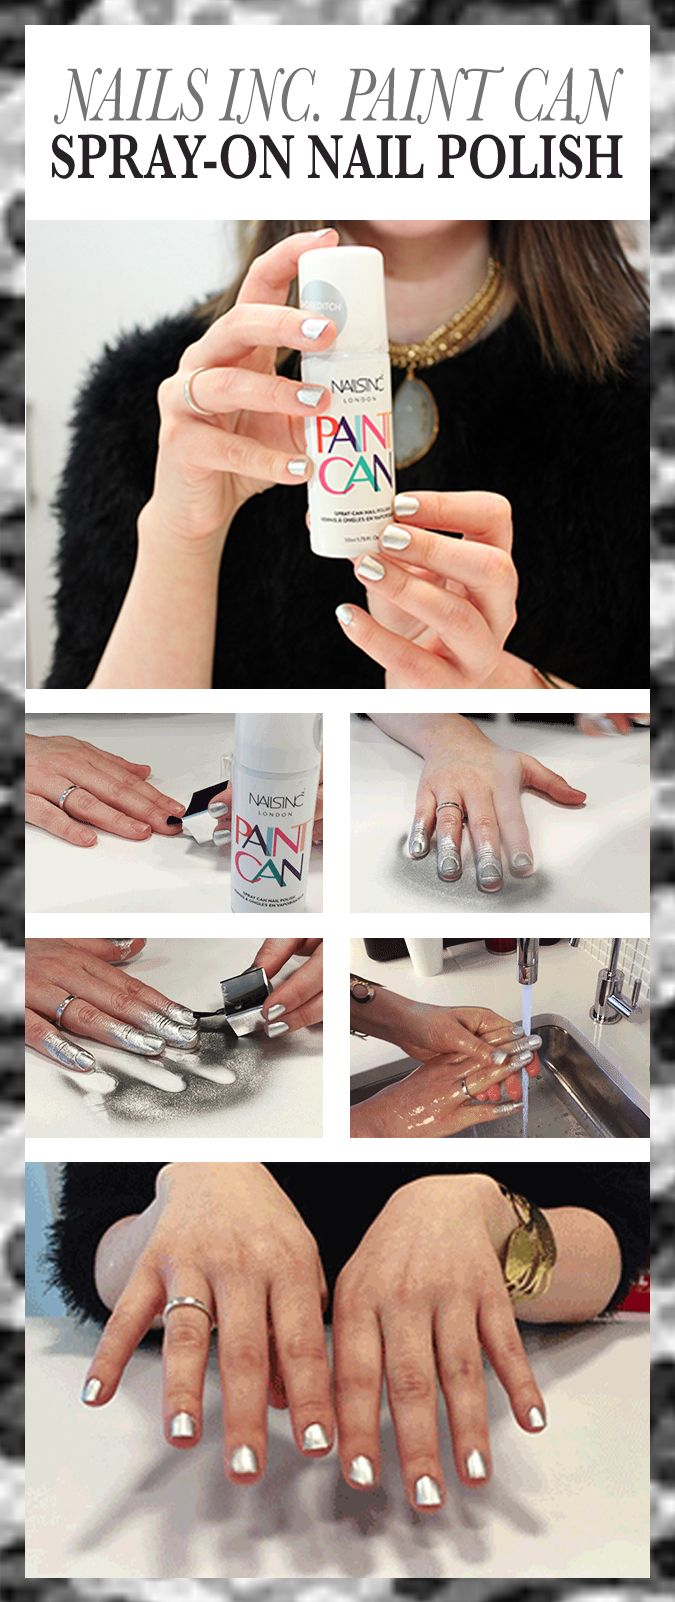 Does it work nails inc paint can spray on nail - Nails Inc Practically Broke The Internet At Least The Beauty Centric Parts Nail Paintsspray Paint